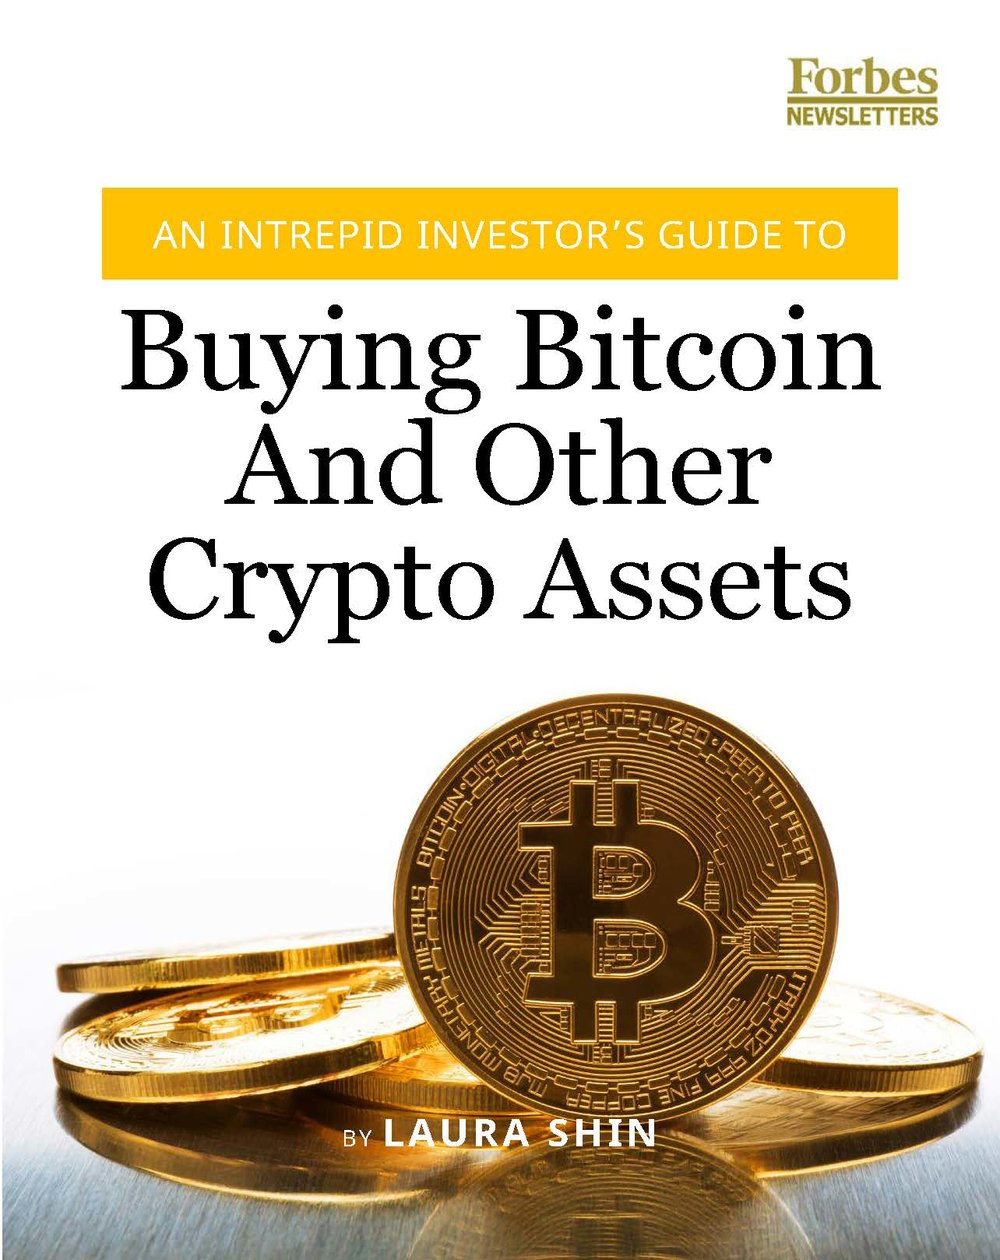 forbes-crypto-newsletter-r04_Page_01.jpg